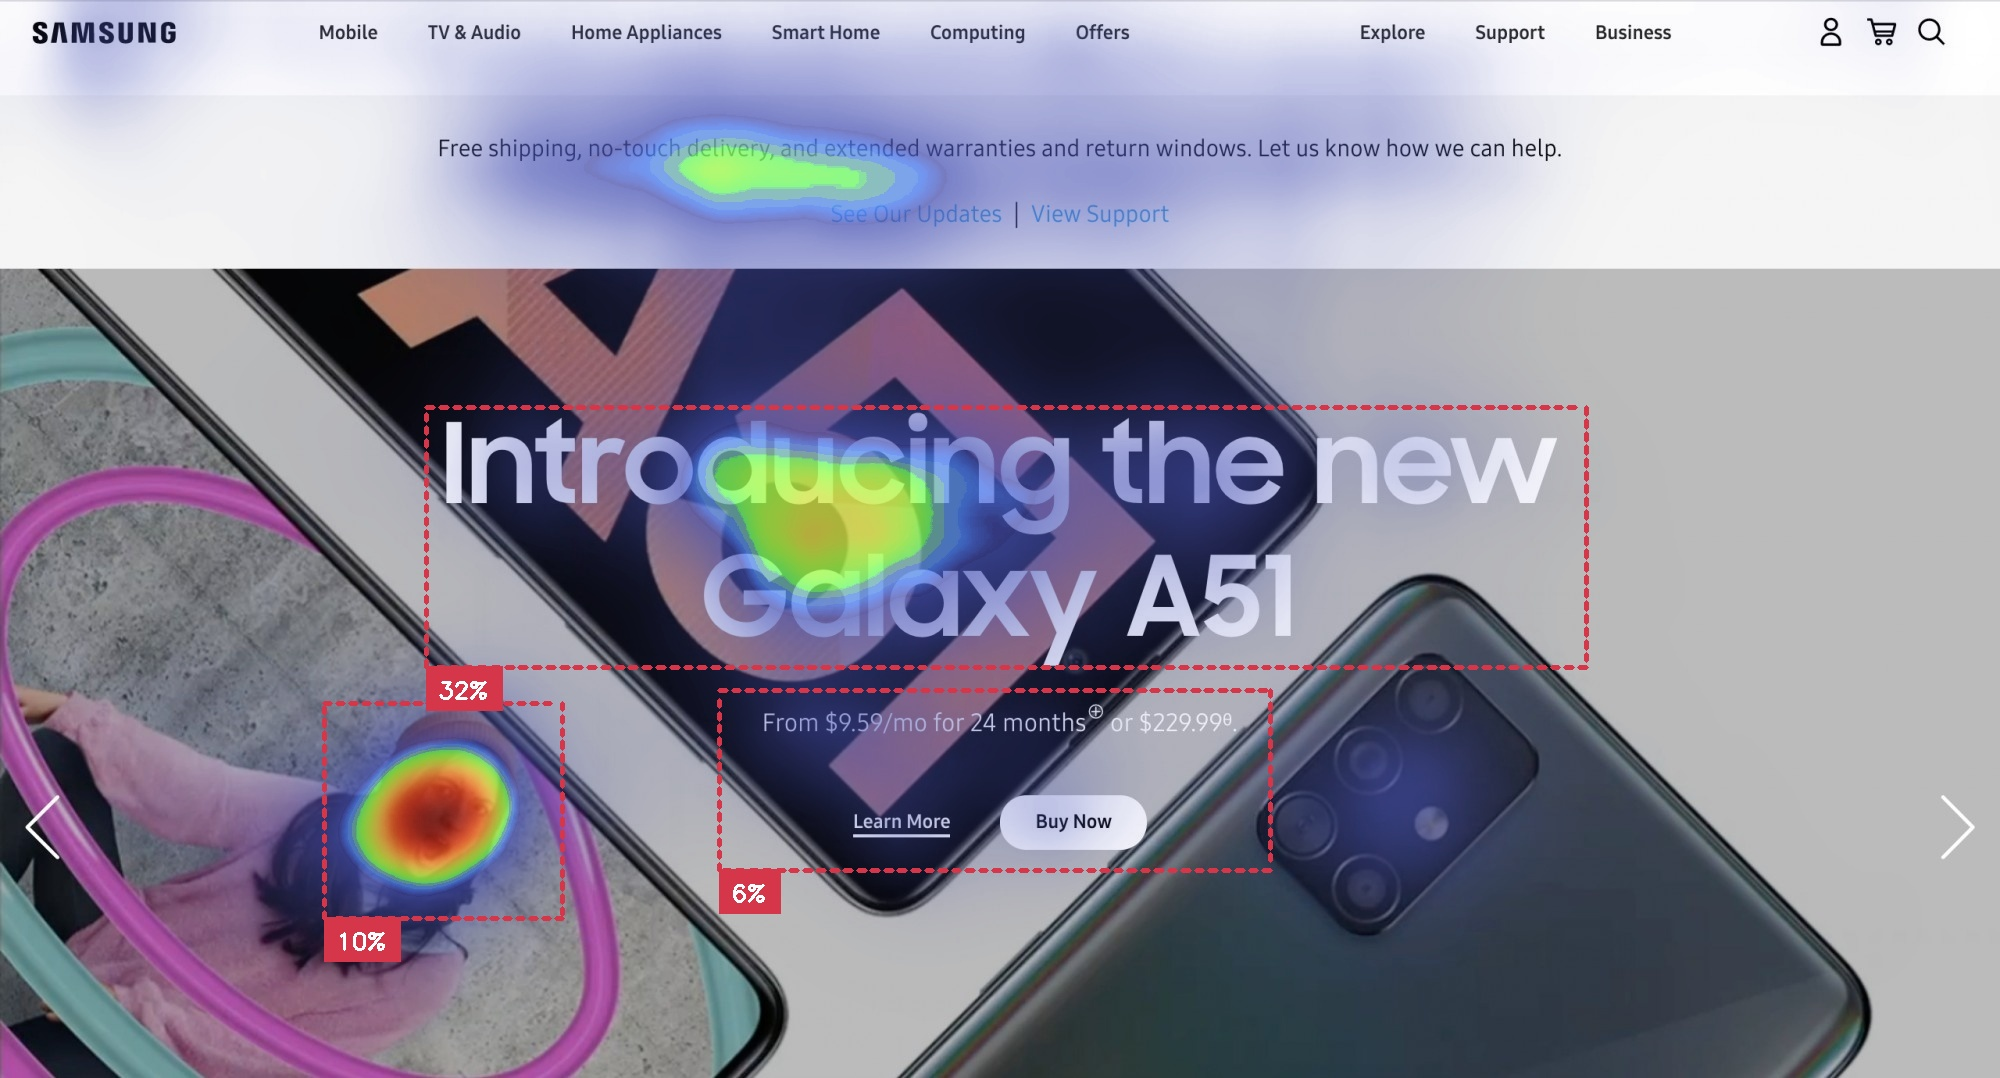 Samsung landing page with Galaxy A51 and main message with buttons with attention insight heatmap